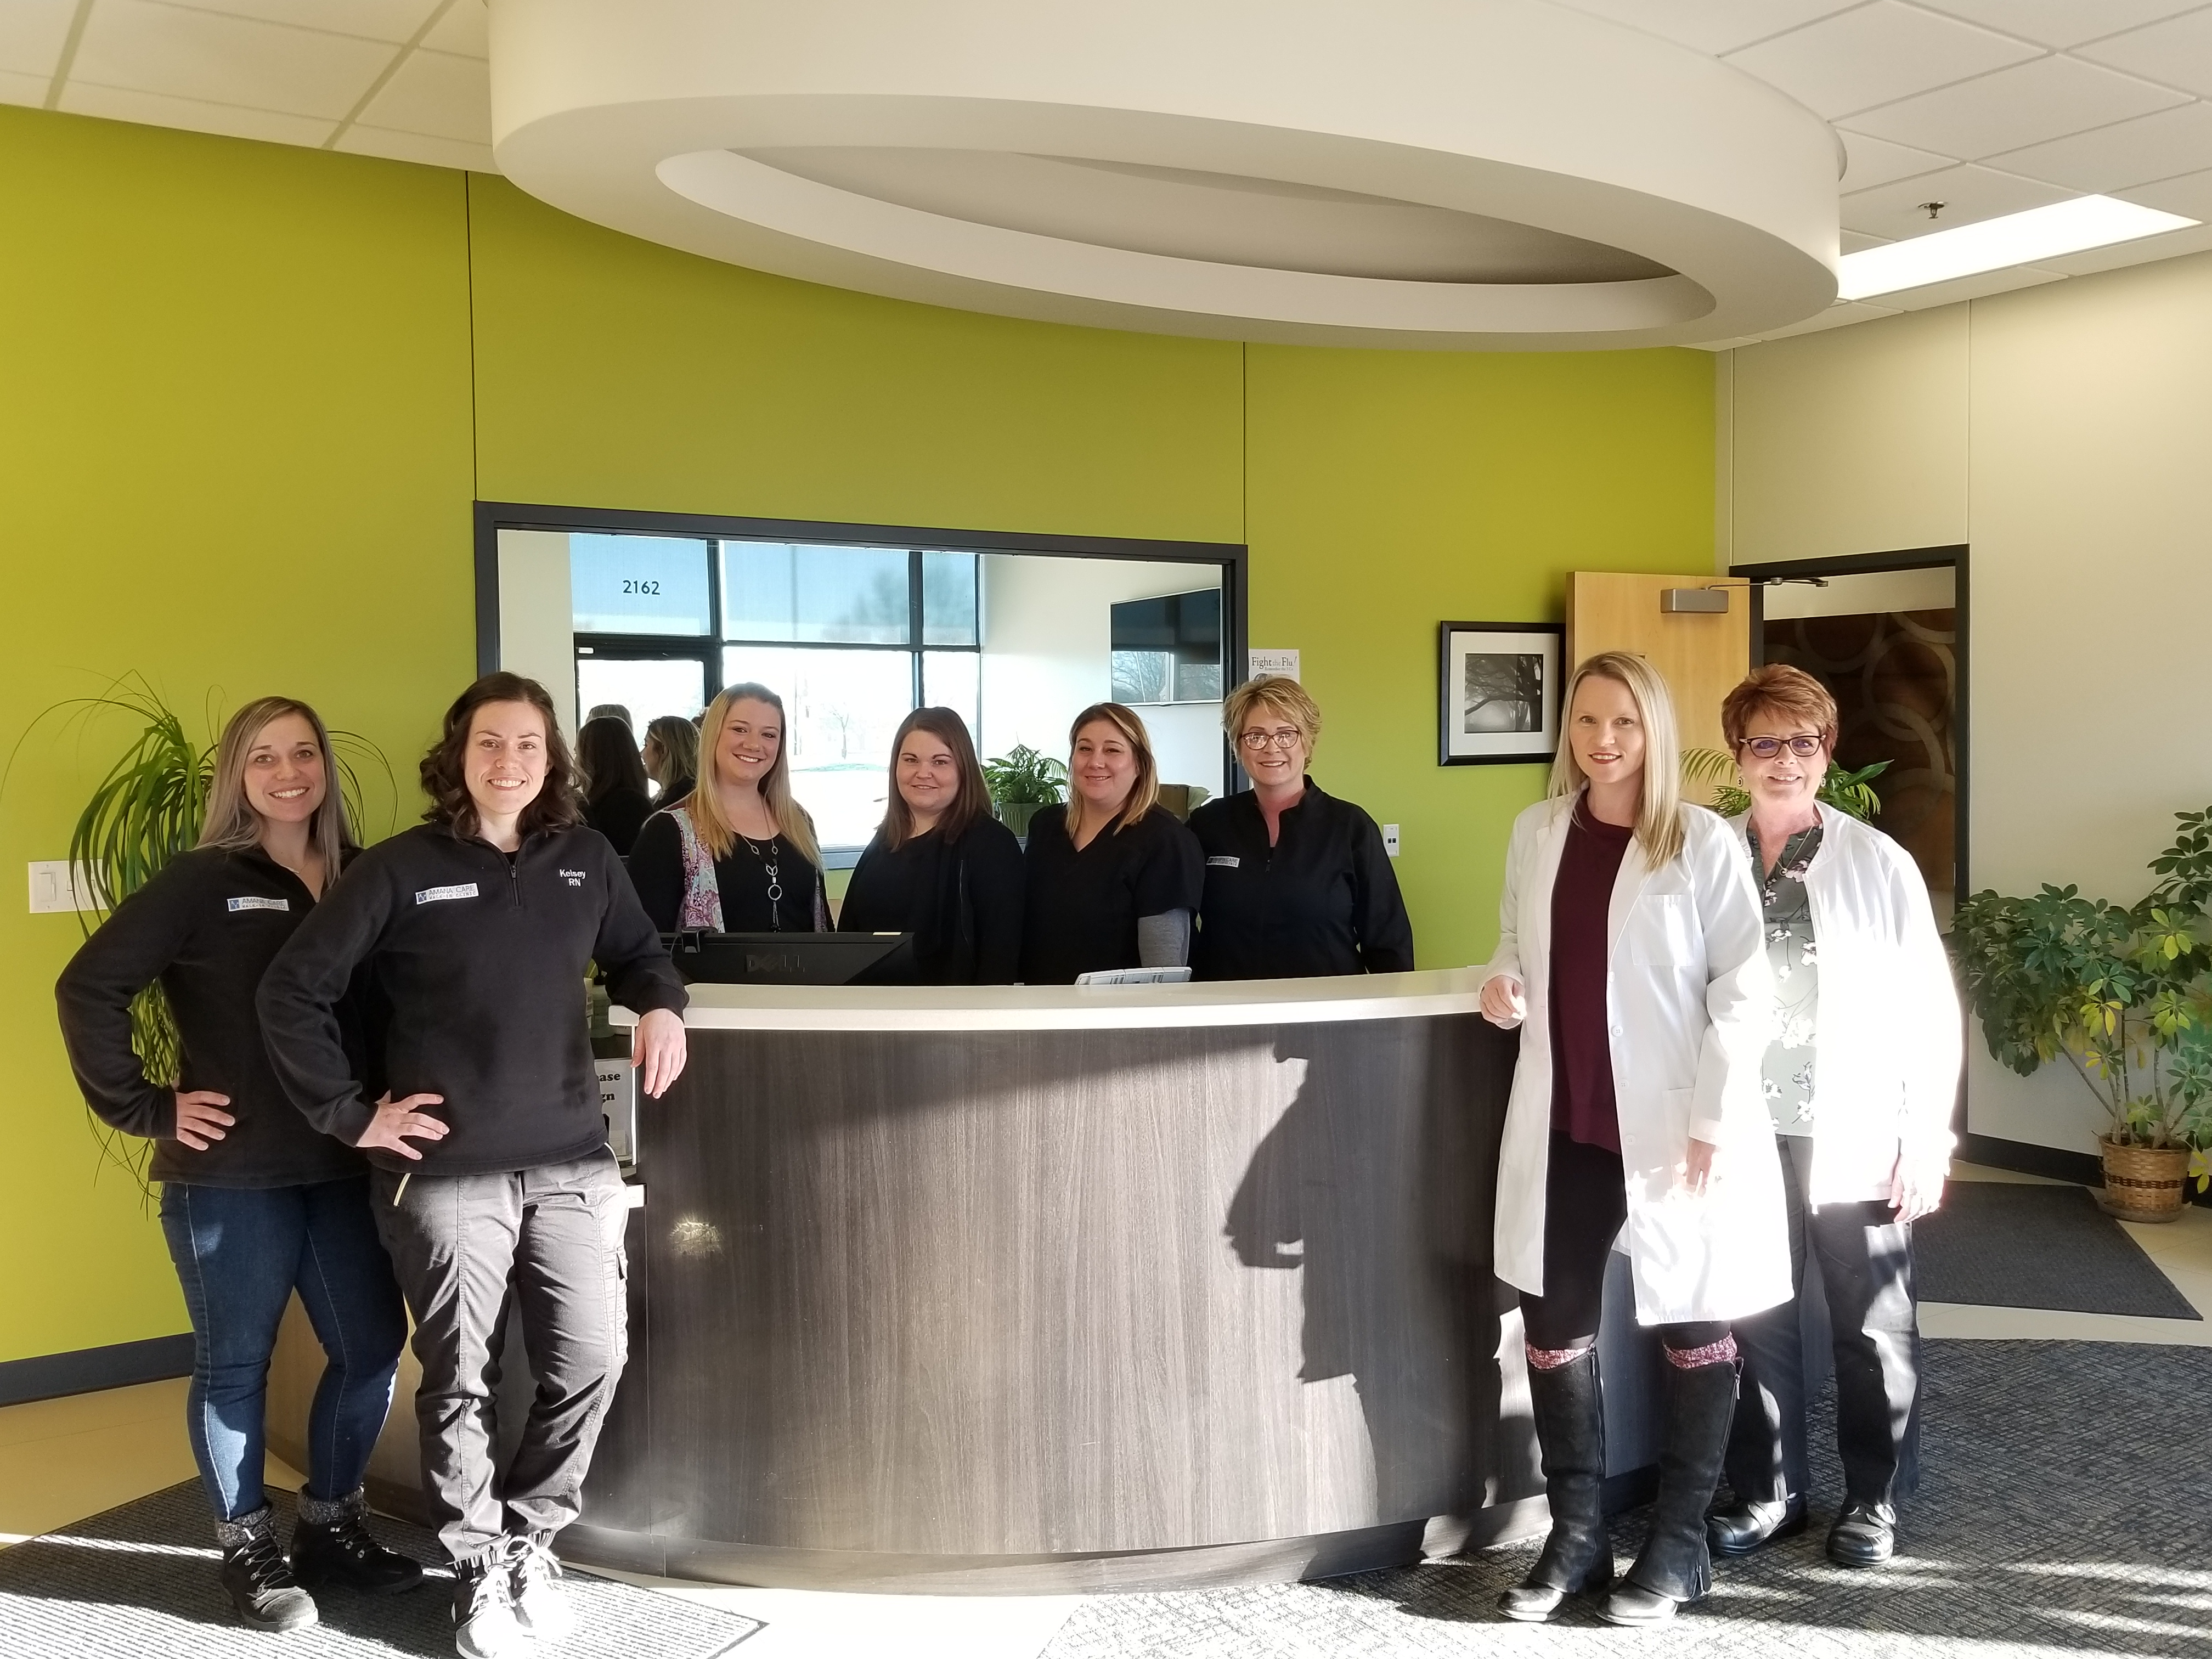 Amana Care walk in clinic that provides efficient